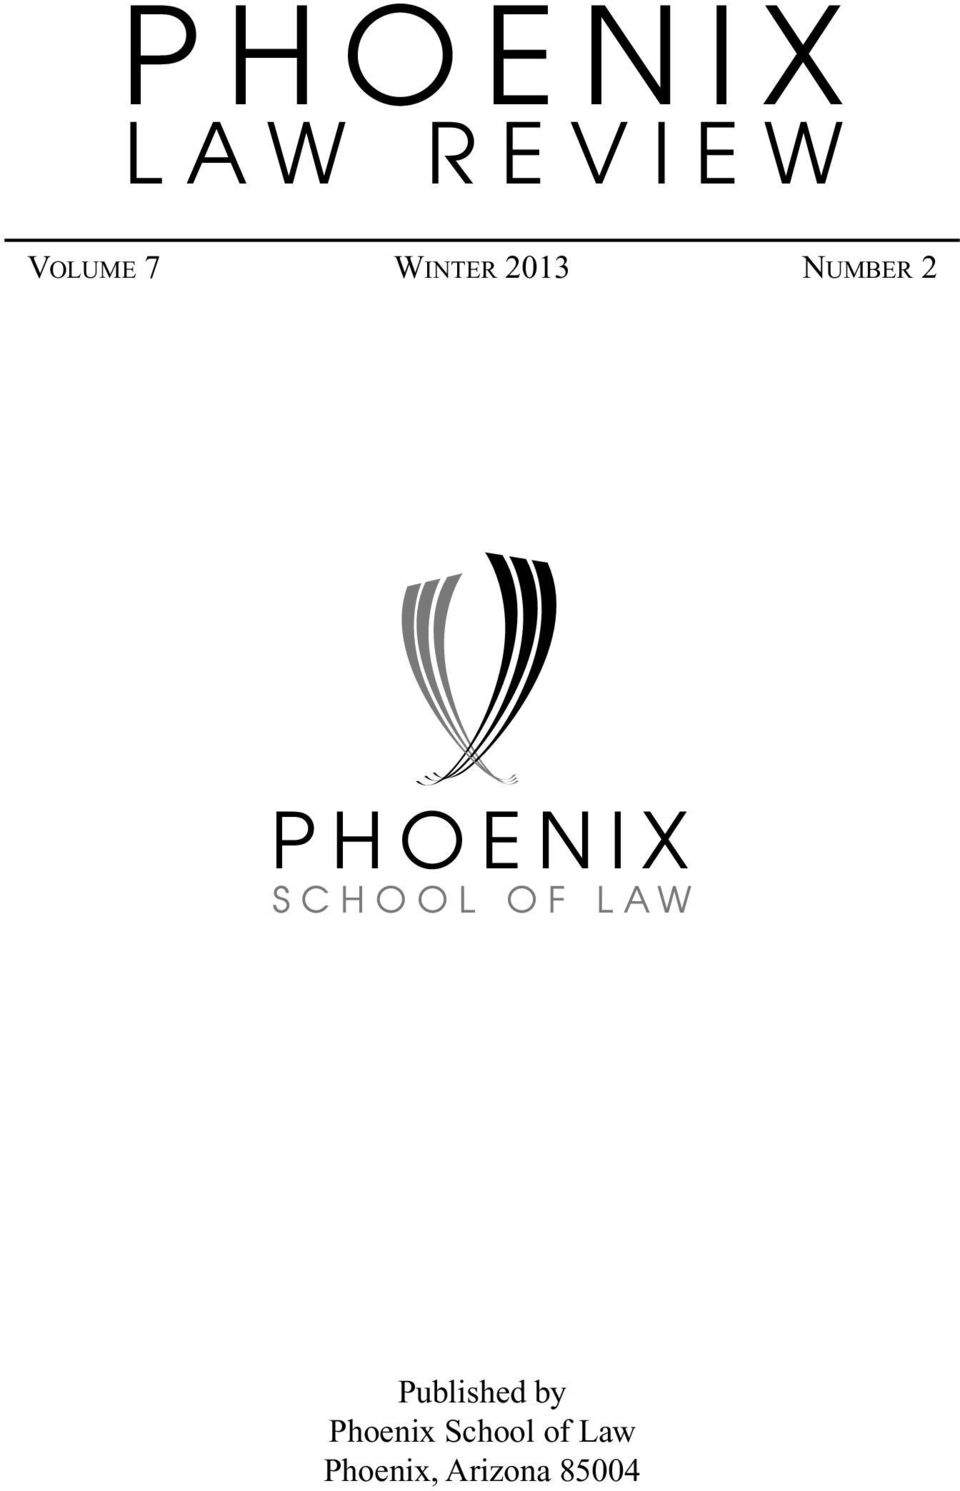 Published by Phoenix